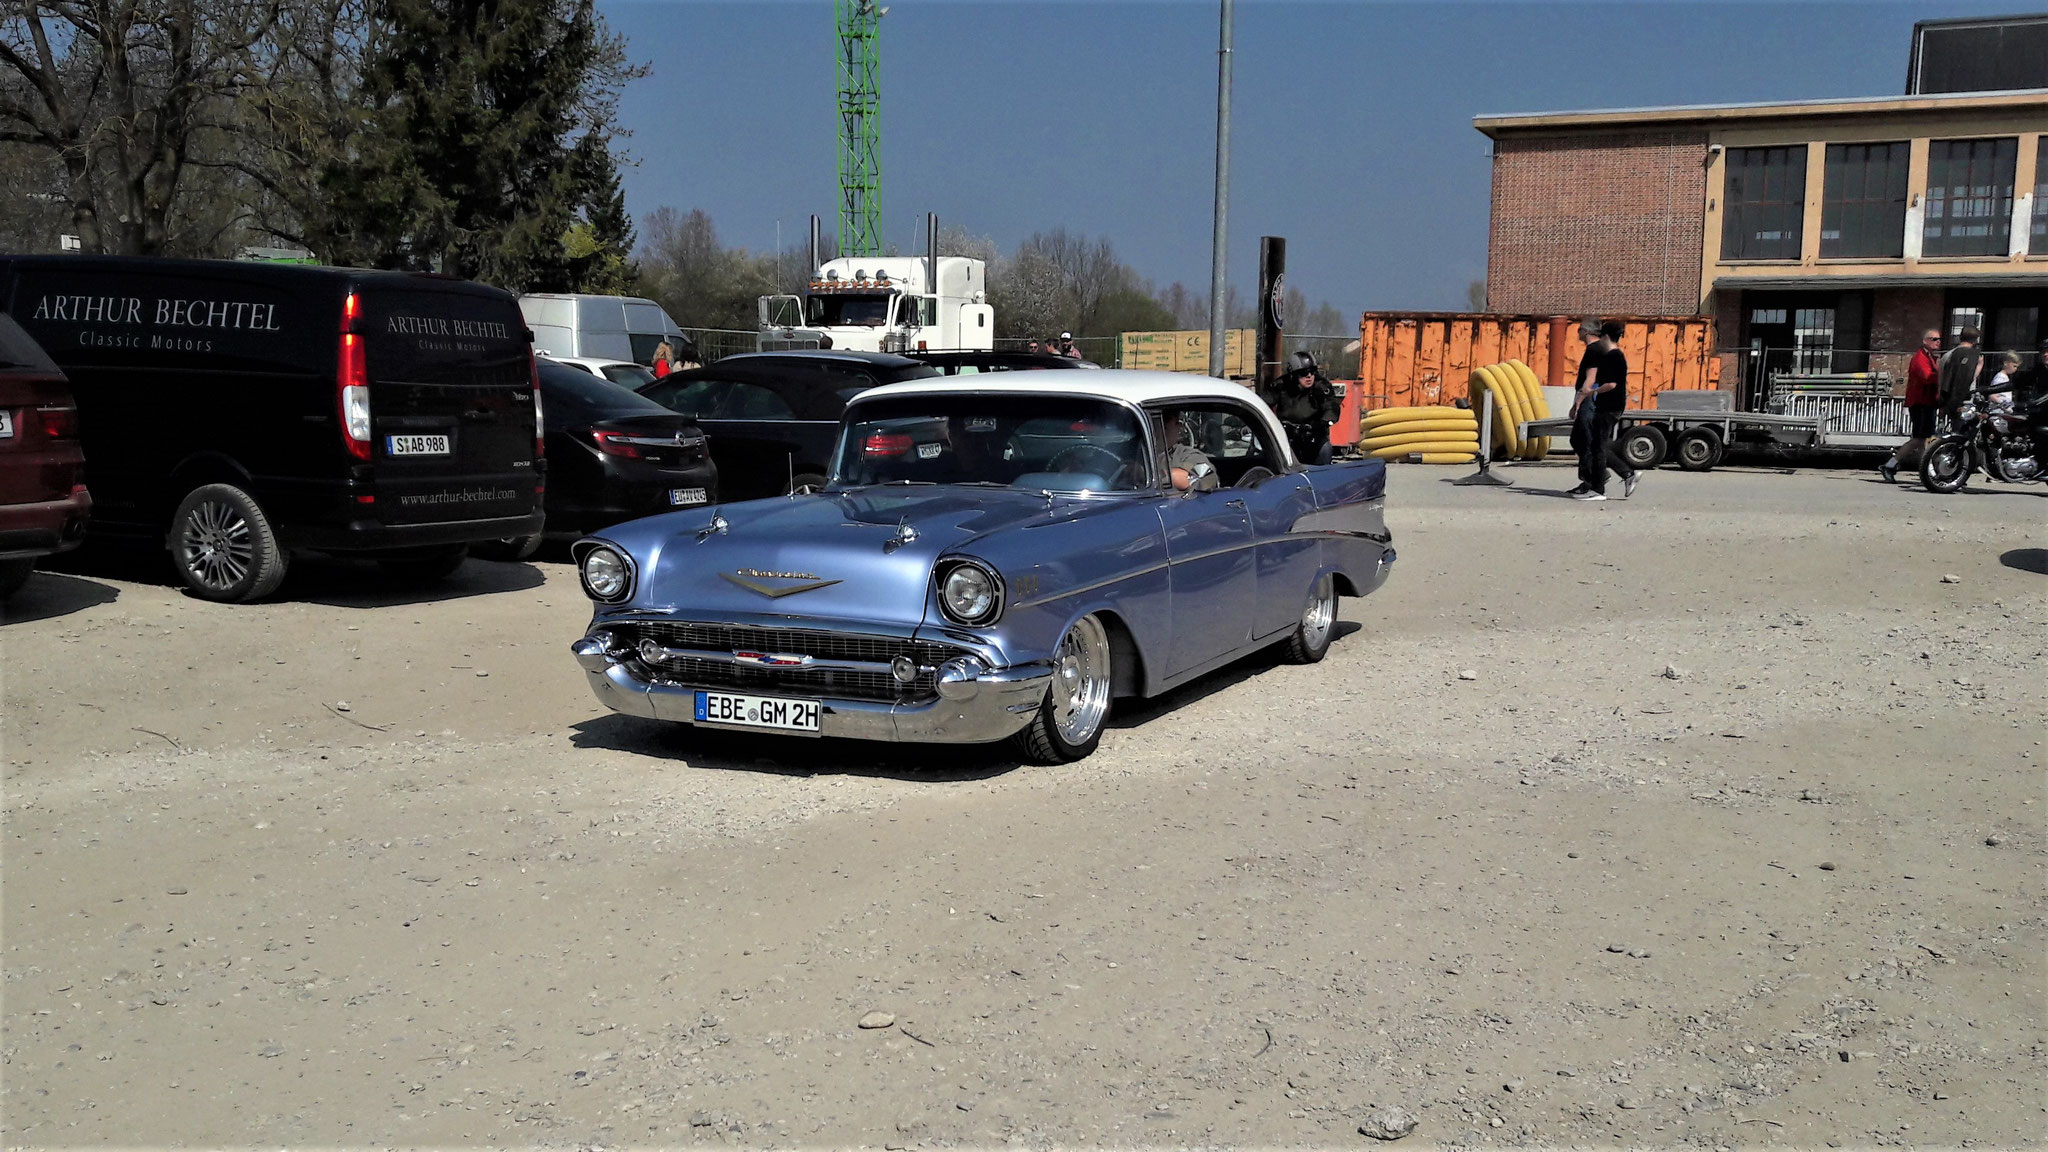 Chevrolet Bel Air - EBE-GM-2H